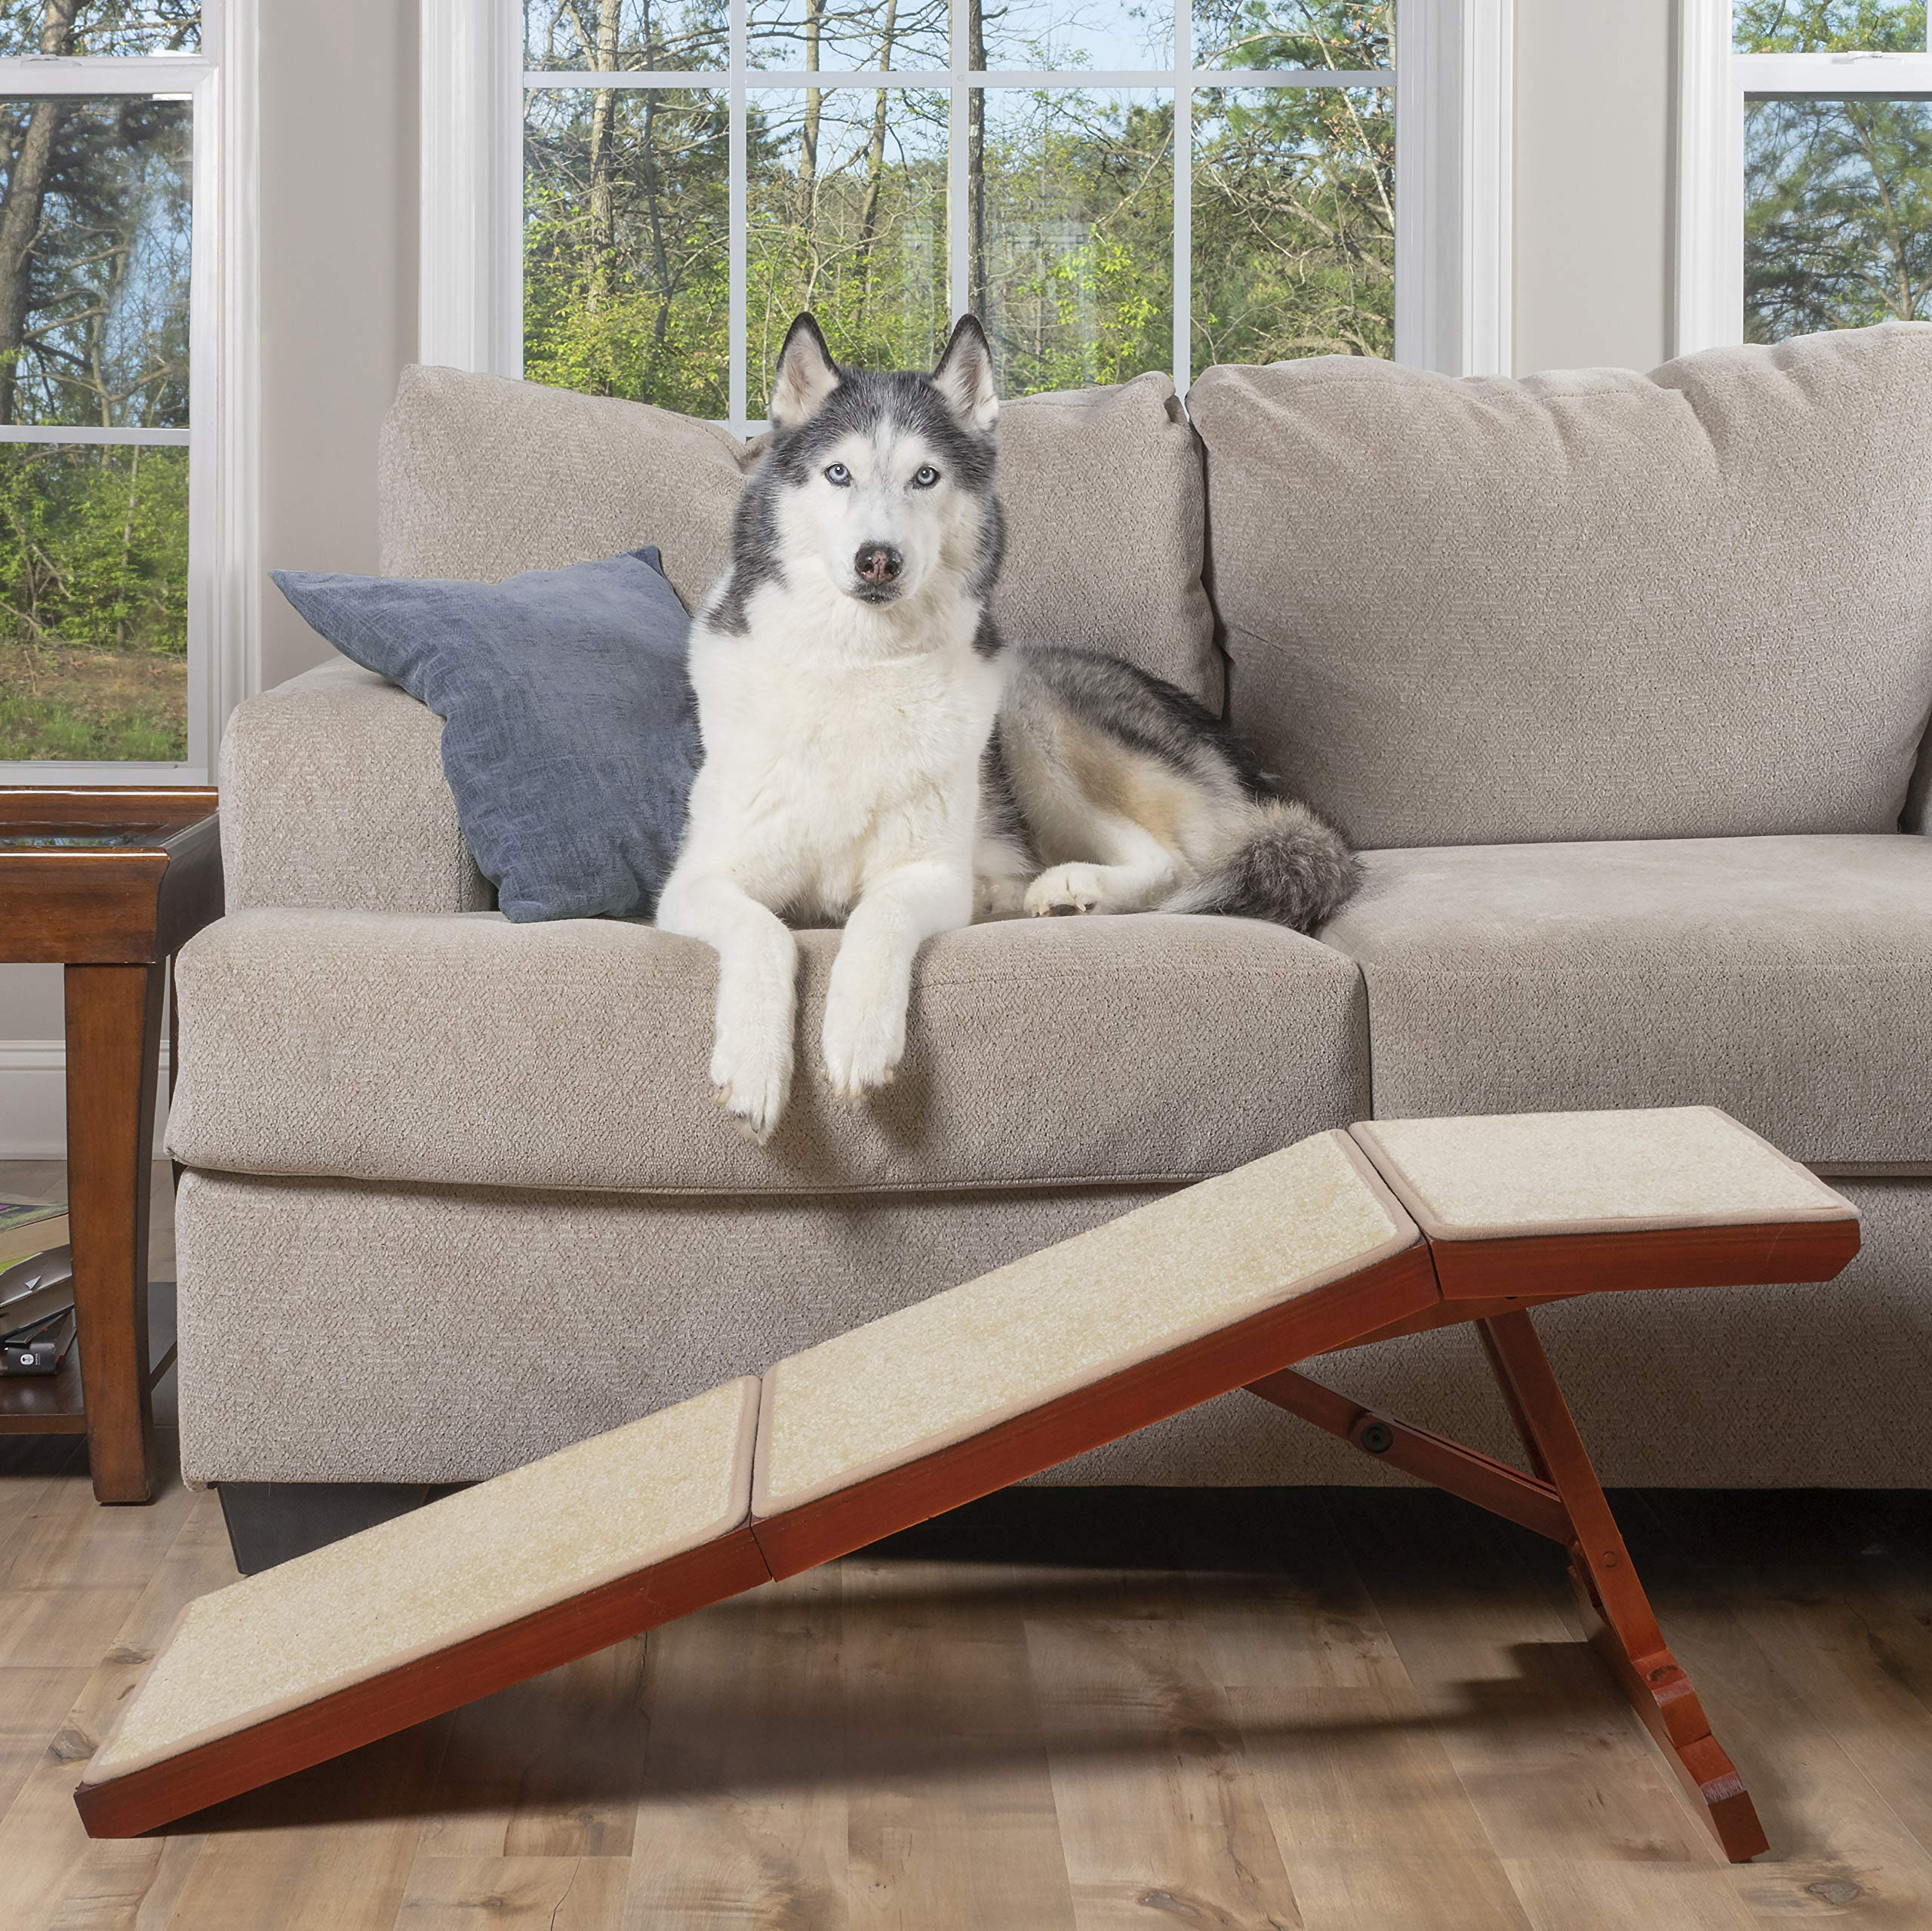 PetSafe Solvit Wood Sofa Ramp, 45 in. L Wood Pet Ramp Supports Cats and Dogs Up to 100 lb. by PetSafe